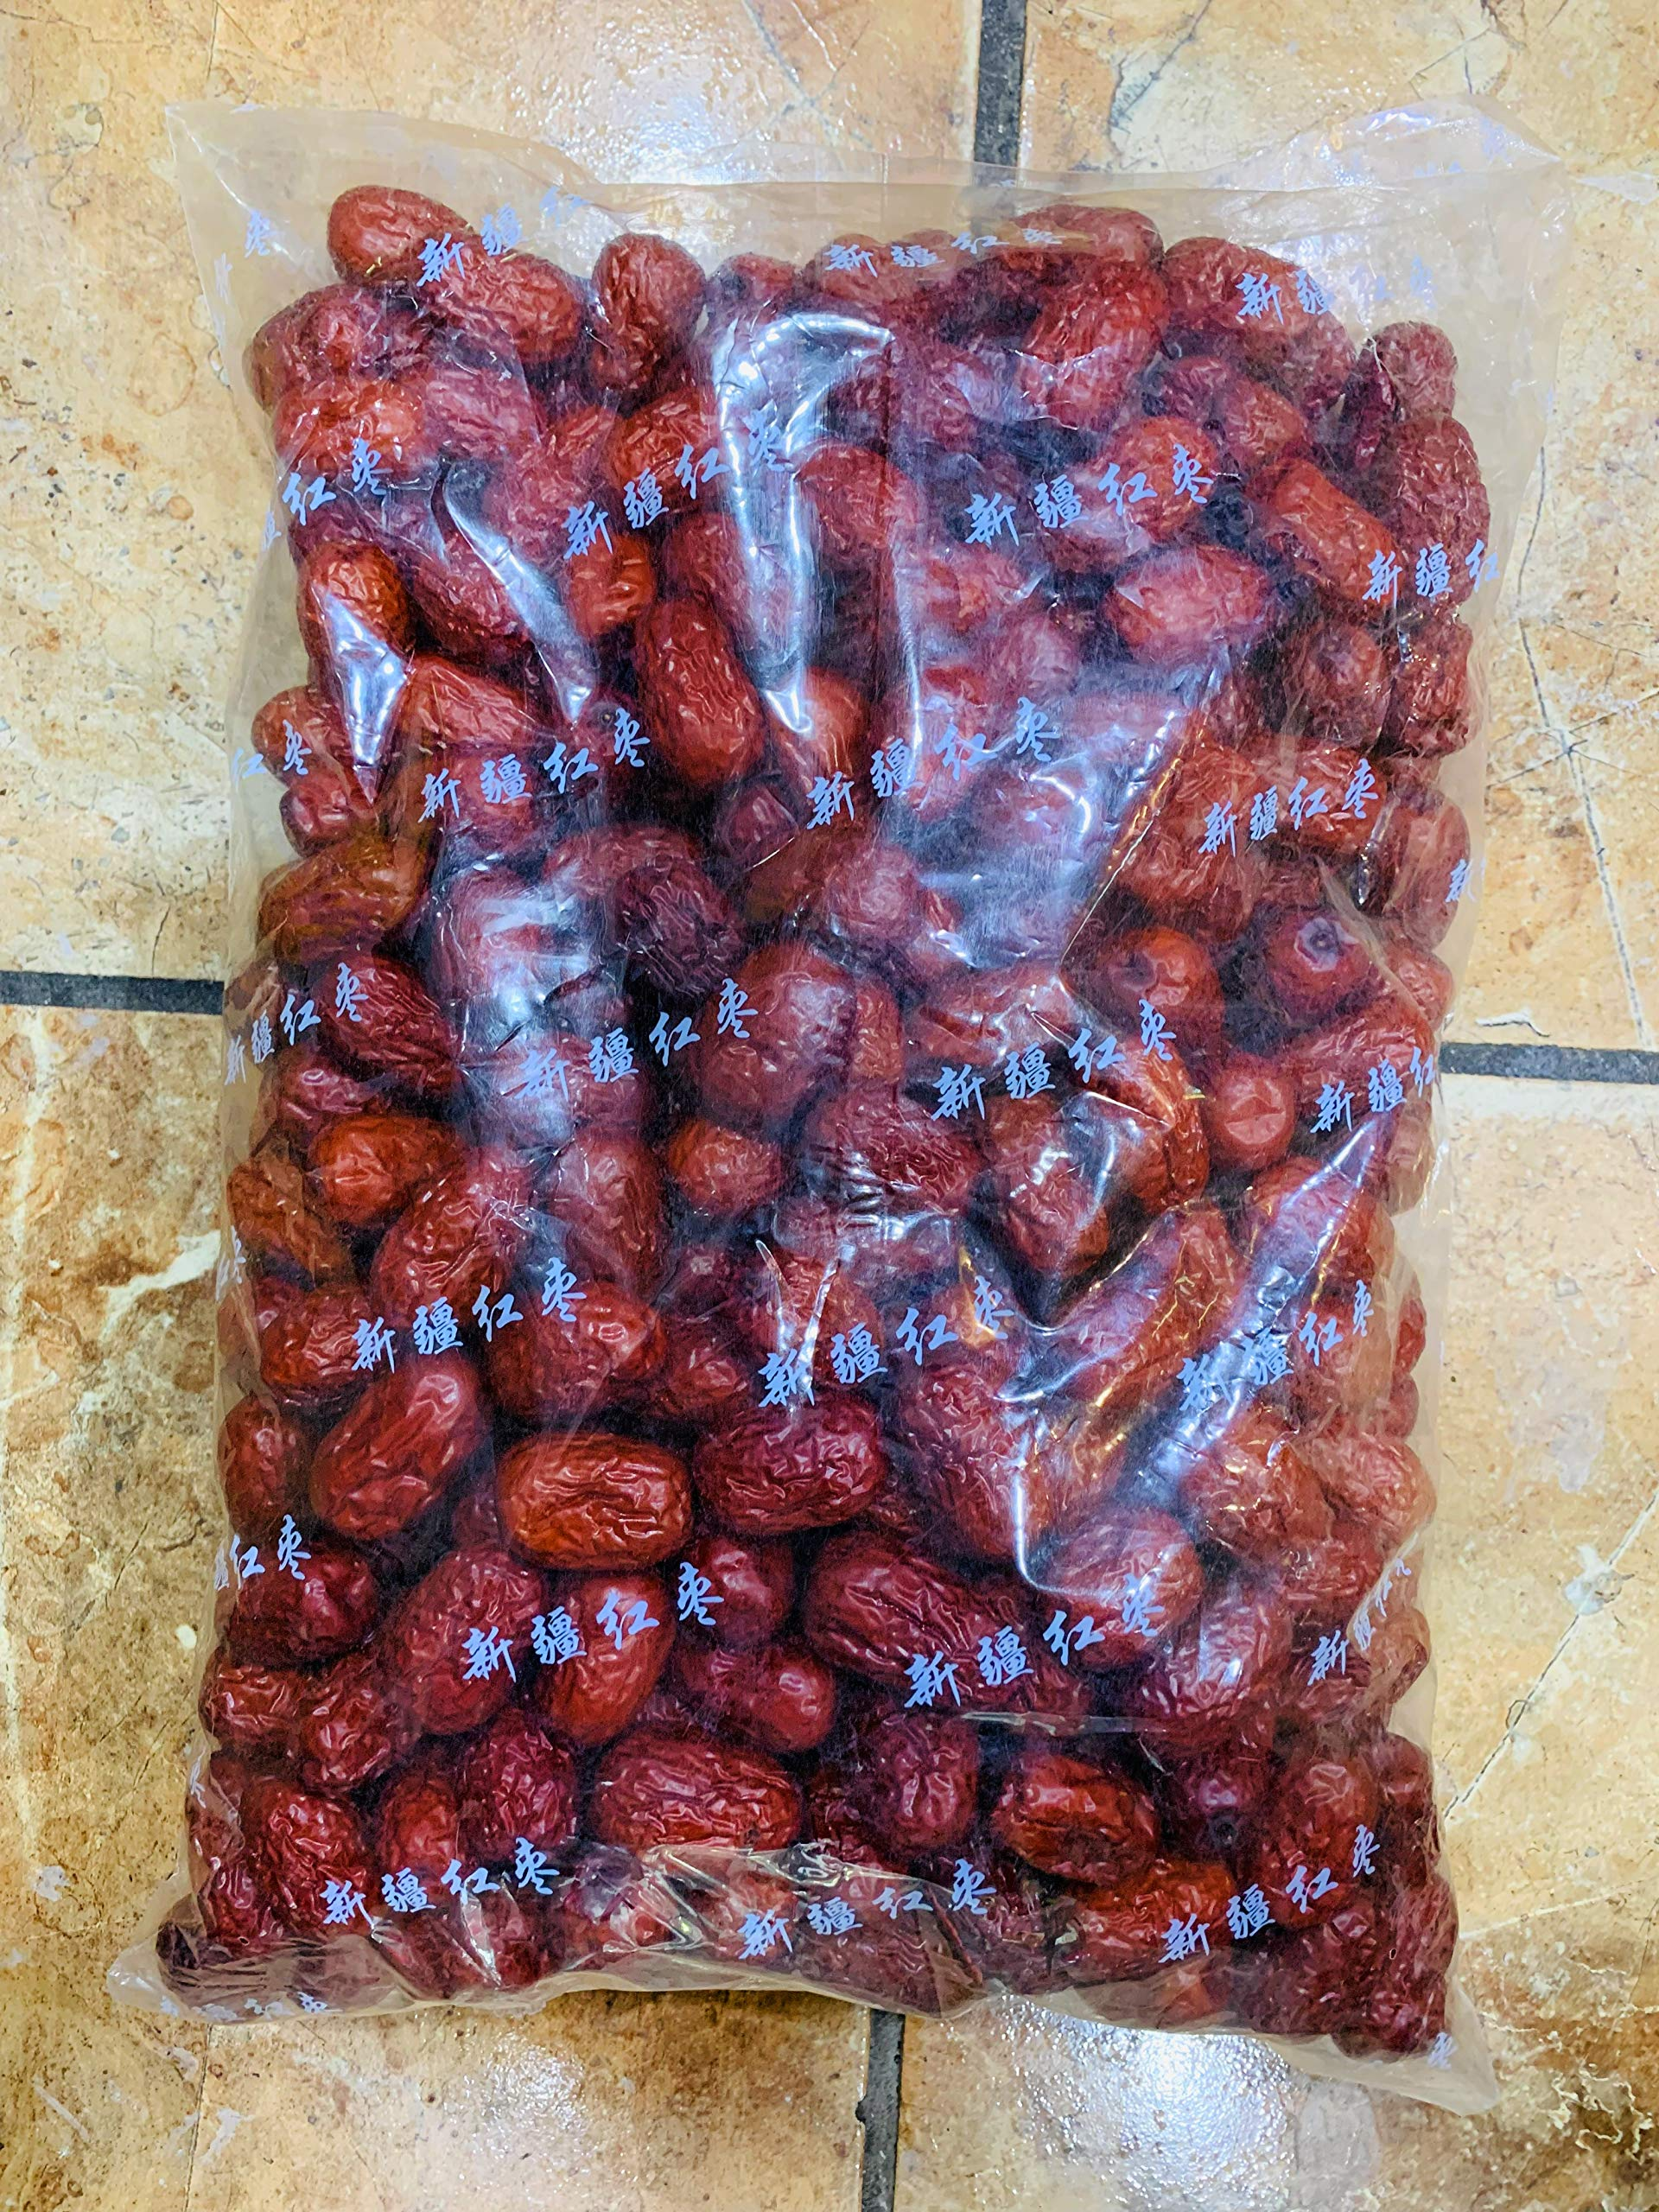 Red Jujube / Red Chinese Dates 新疆红棗 (11 LB (2 Bags))